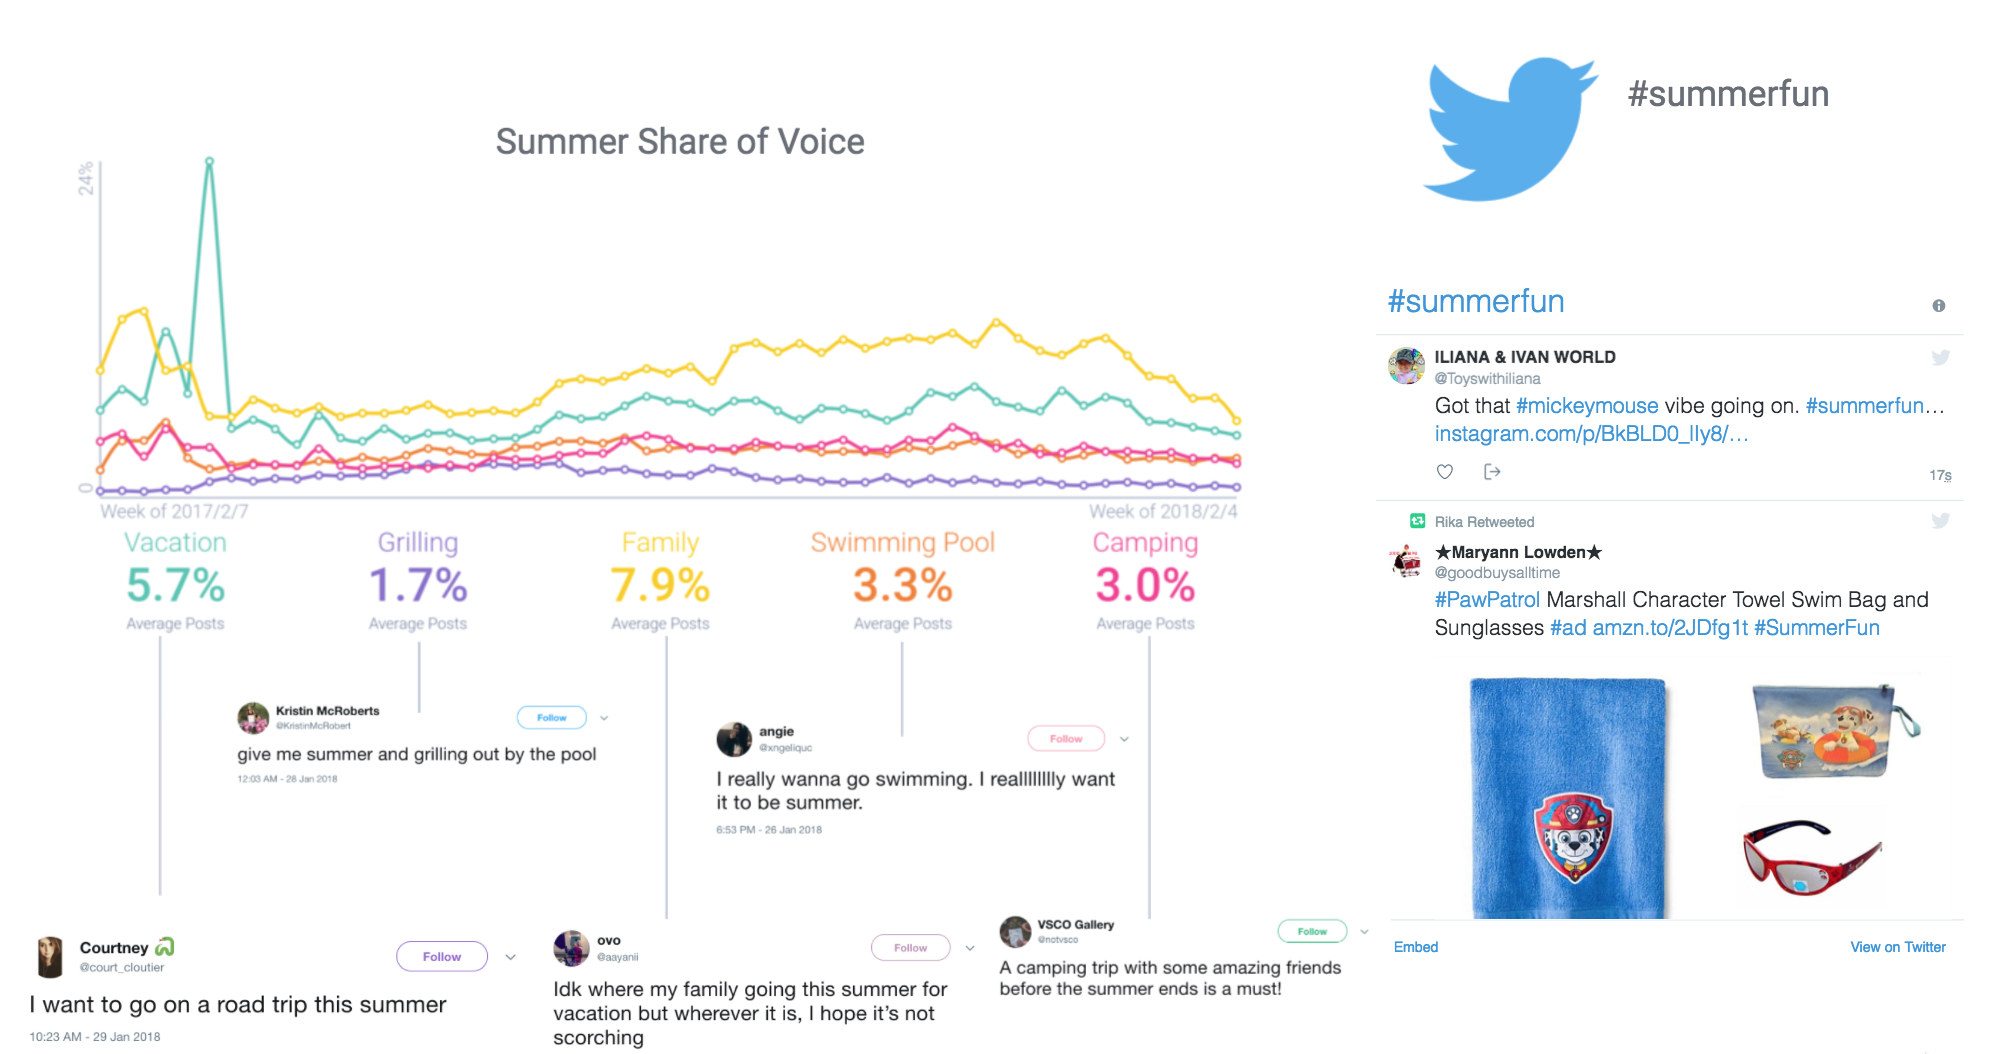 Summer Conversation Data and Share of Voice